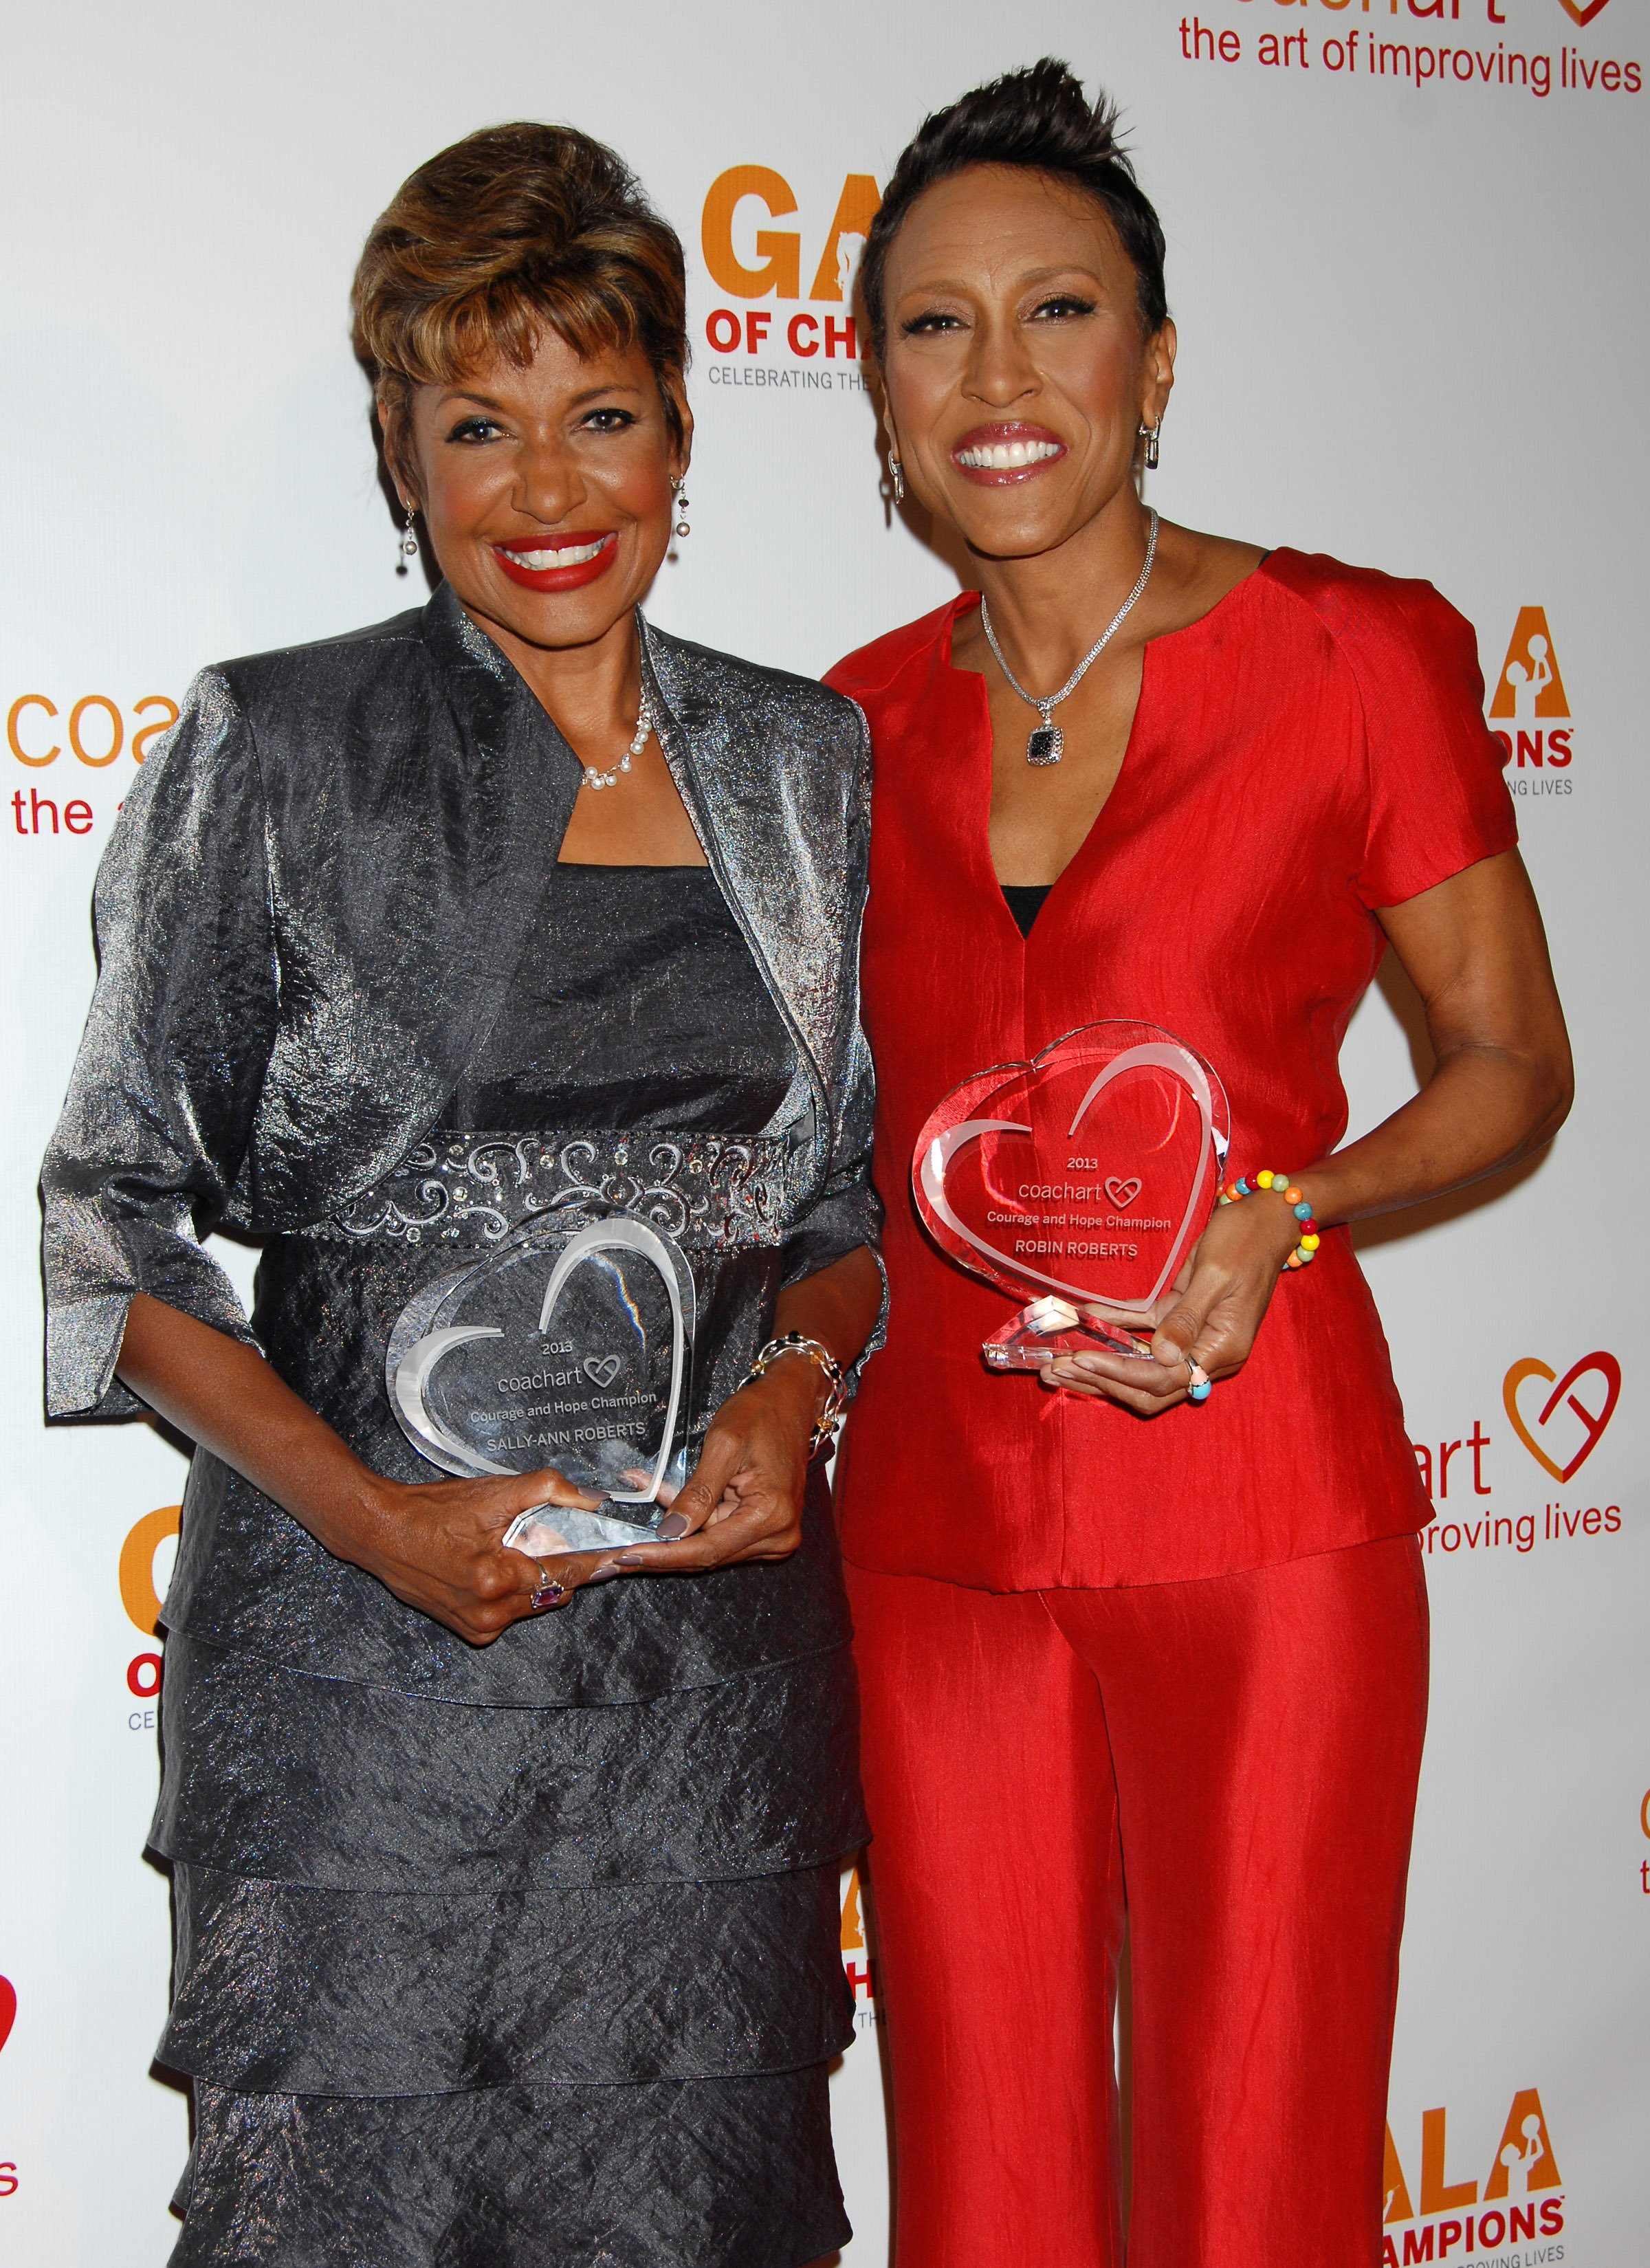 Sally-Ann Roberts and Robin Roberts attend the CoachArt Gala of Champions at The Beverly Hilton Hotel on October 17, 2013 | Photo: Shutterstock